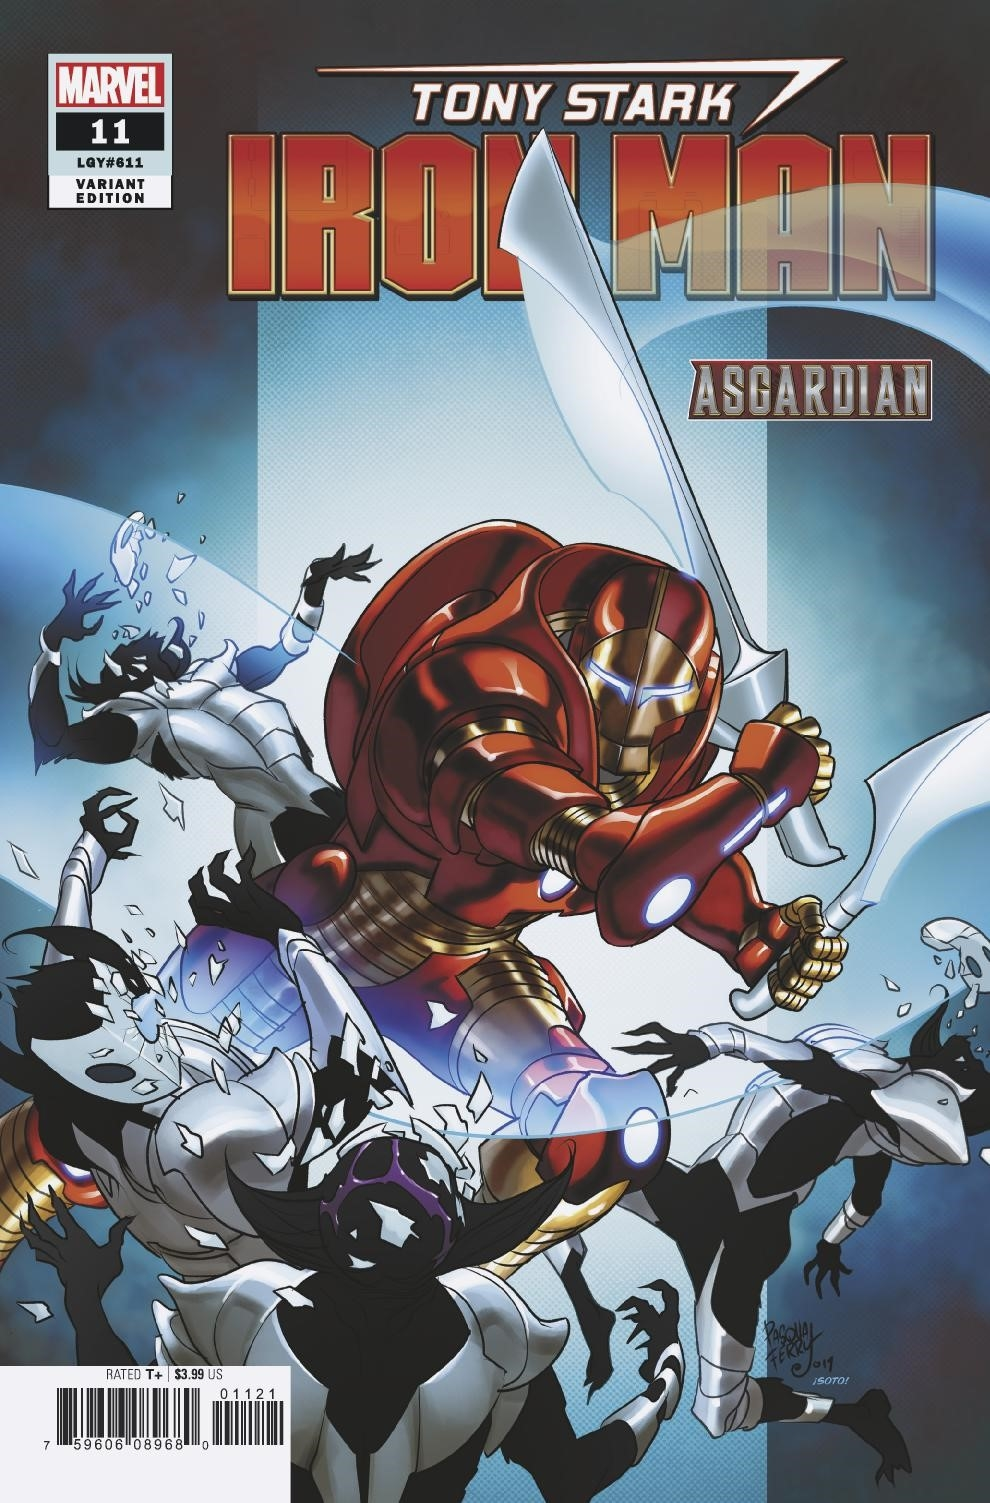 TONY STARK IRON MAN #11 FERRY ASGARDIAN VAR